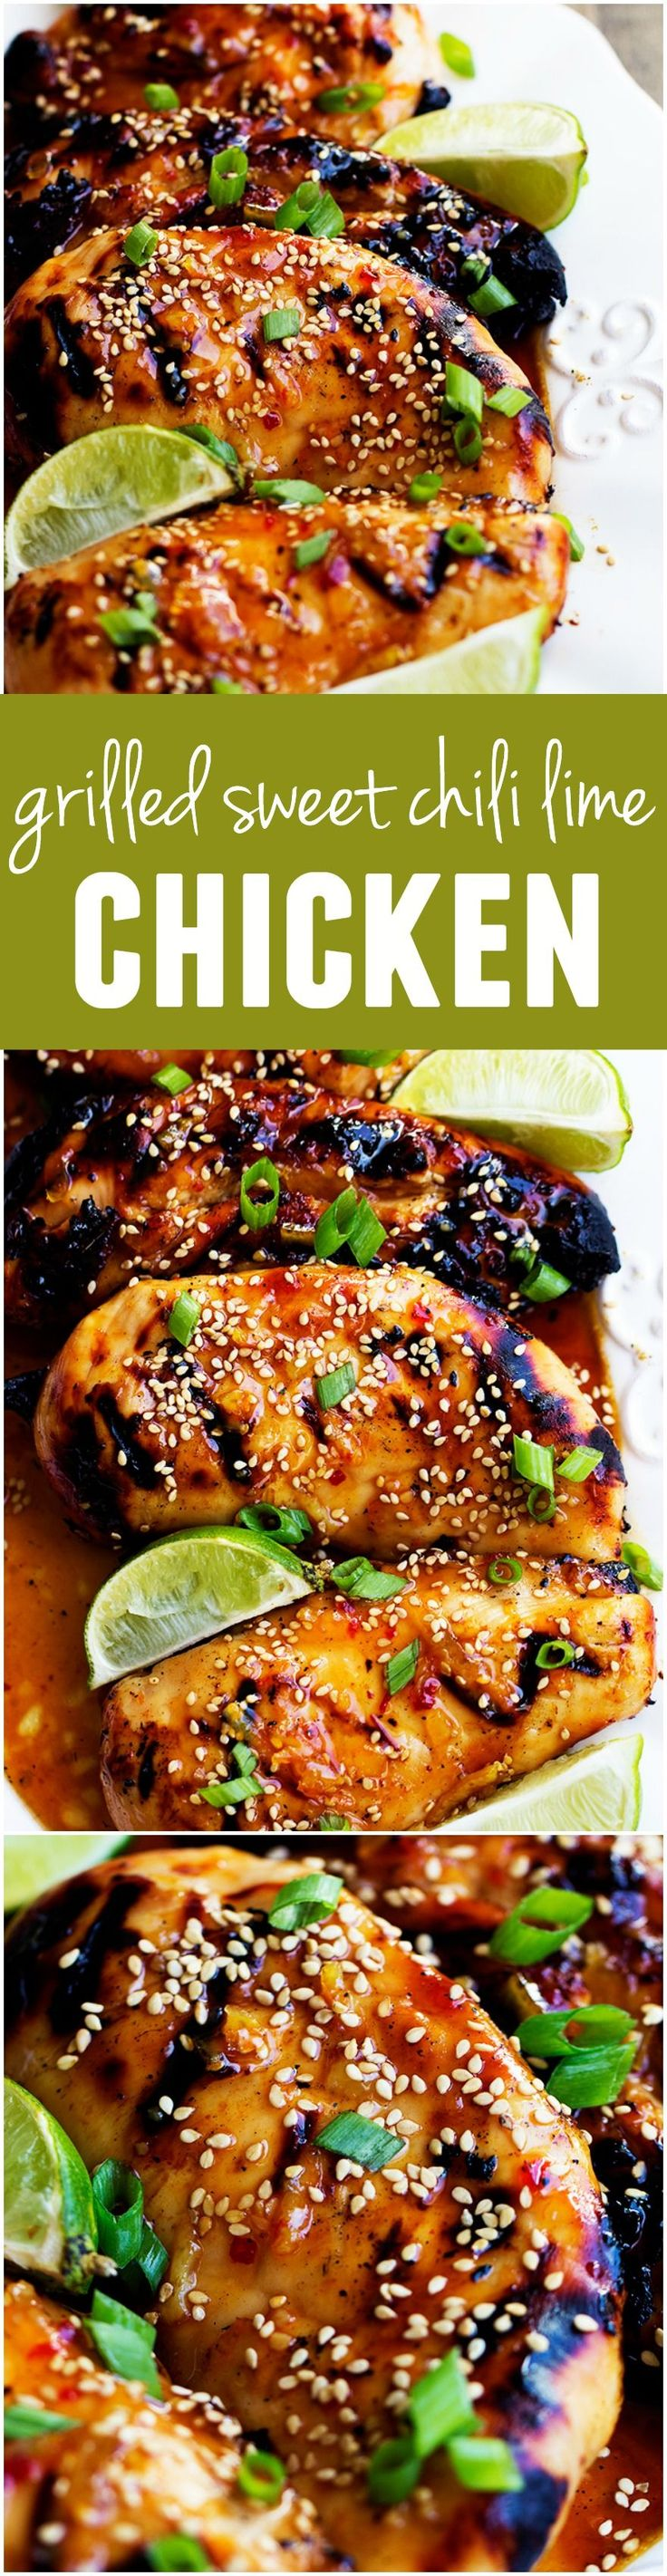 Grilled Sweet Chili Lime Chicken - Tender and juicy perfection and the flavor is out of this world!